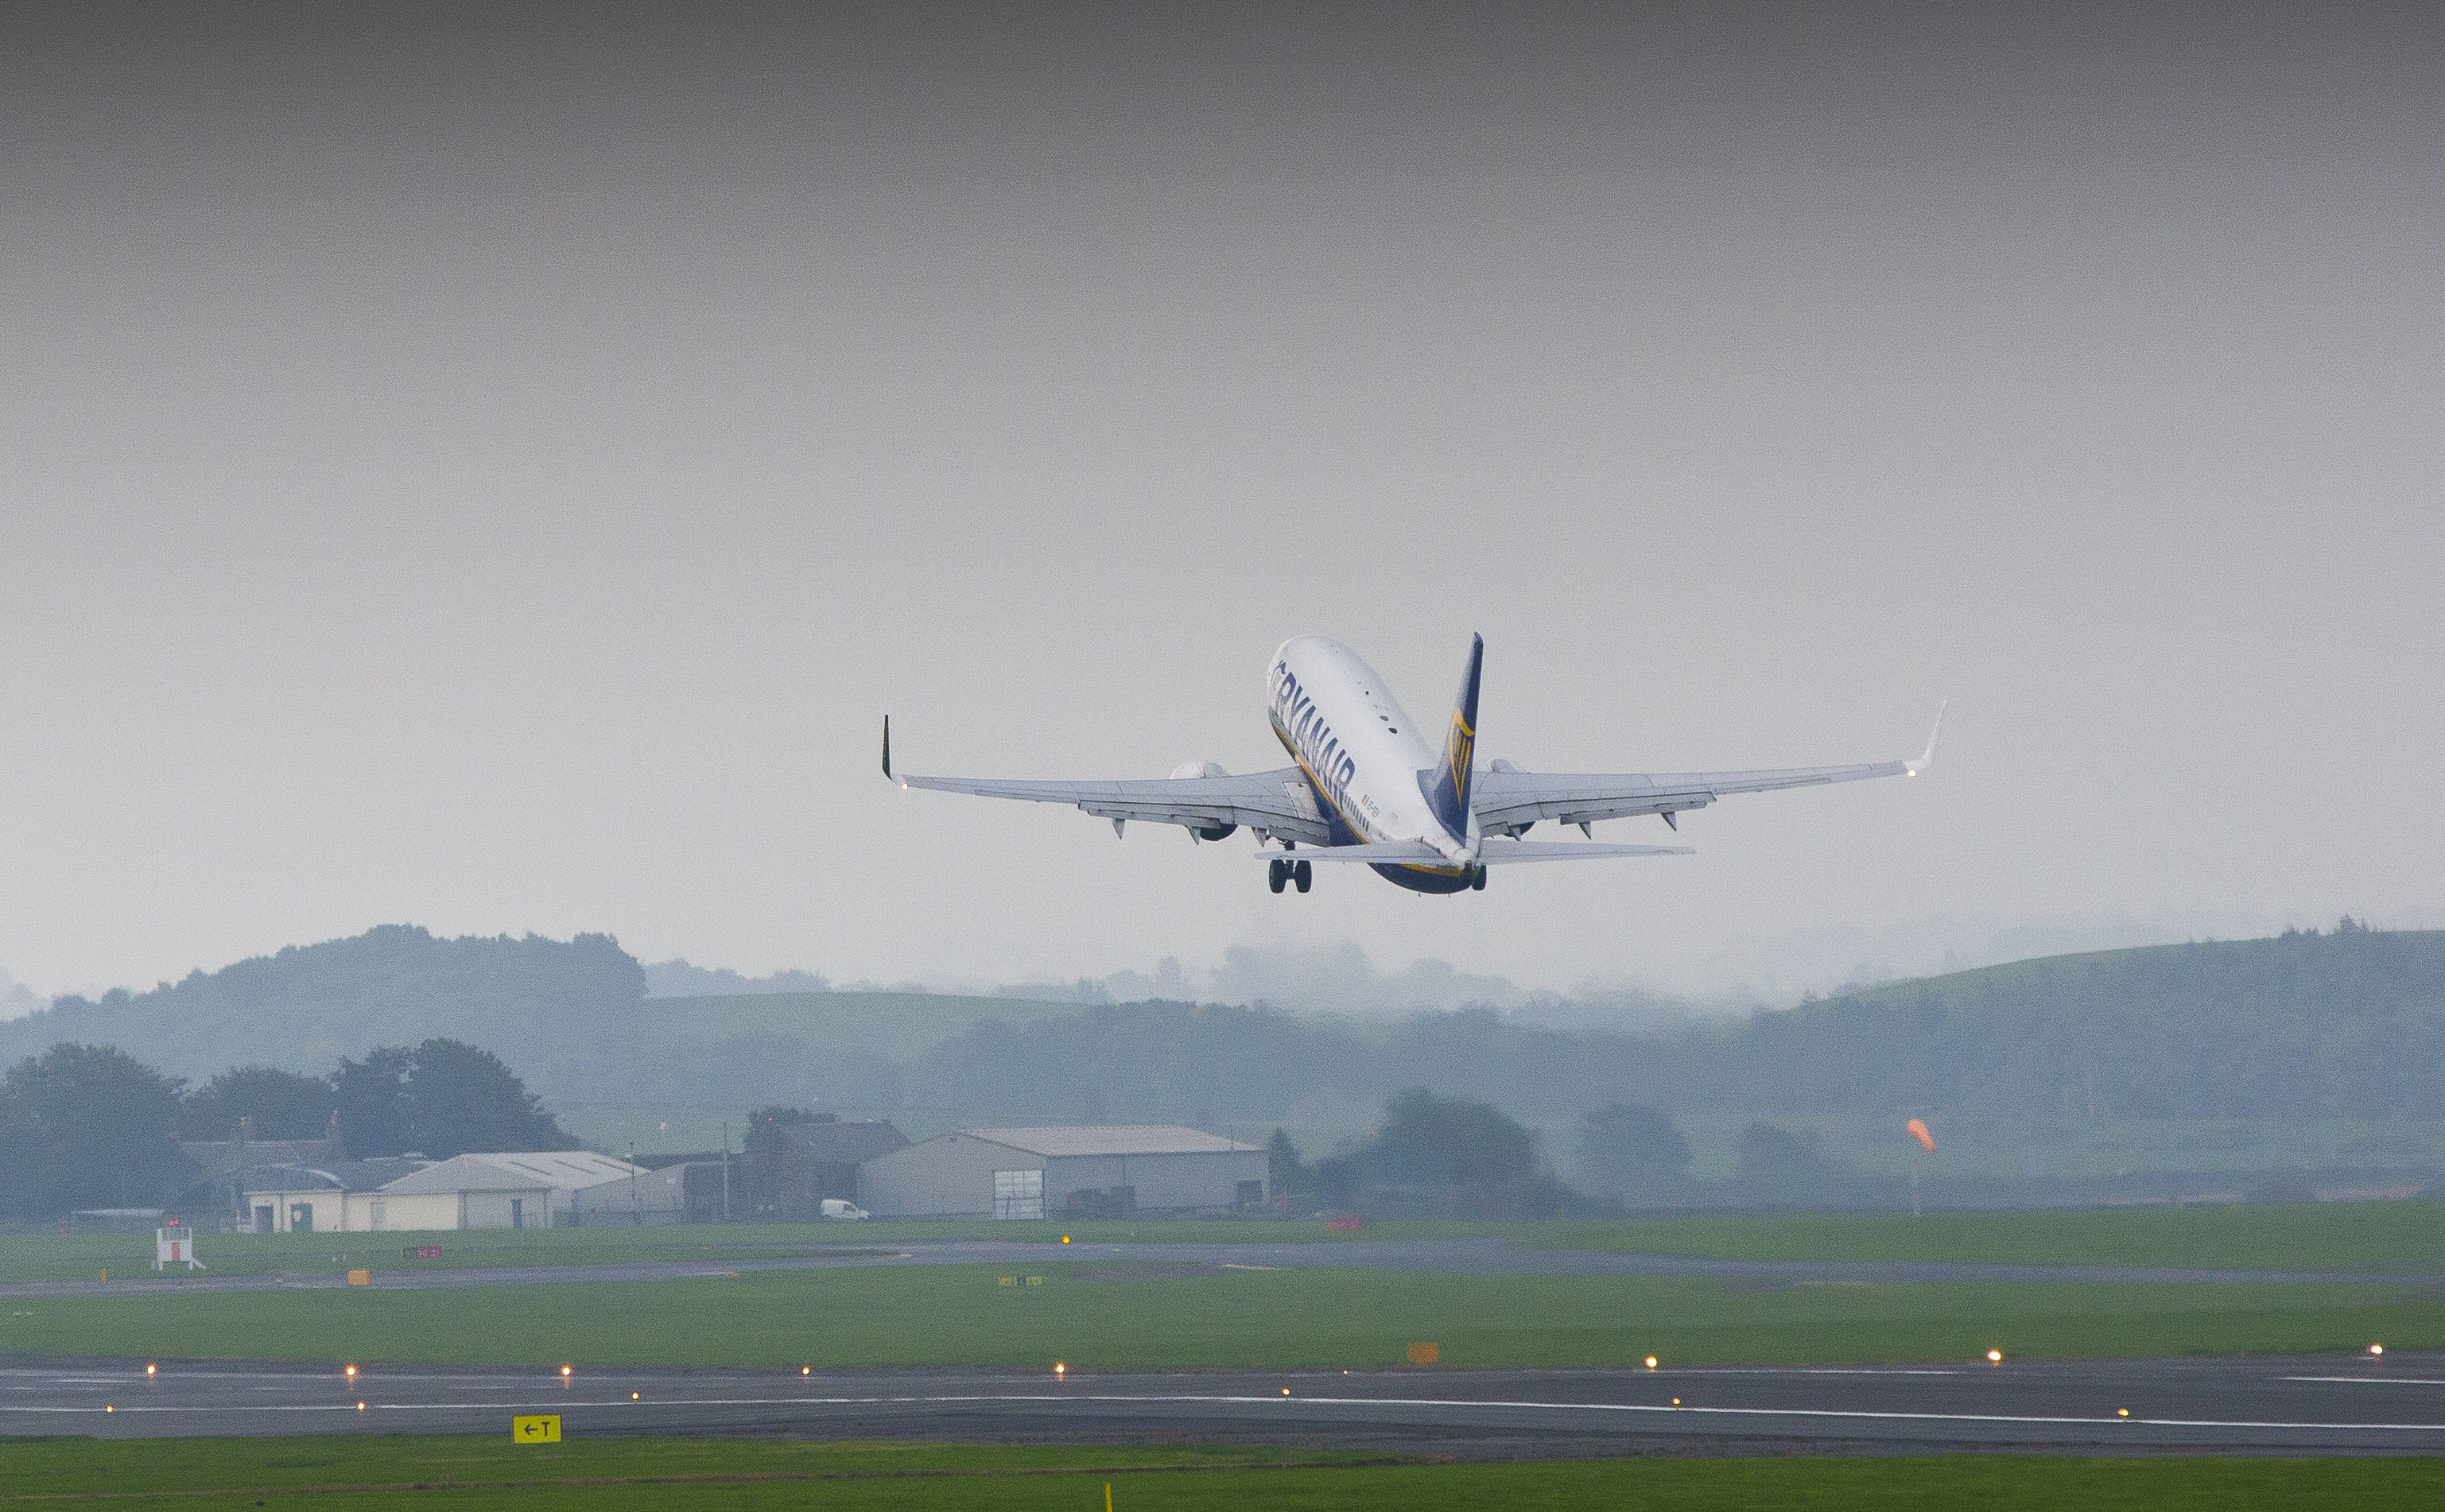 Ryanair Boeing 737-700 fast track training pilots at Prestwick Airport Scotland (Jamie Williamson)